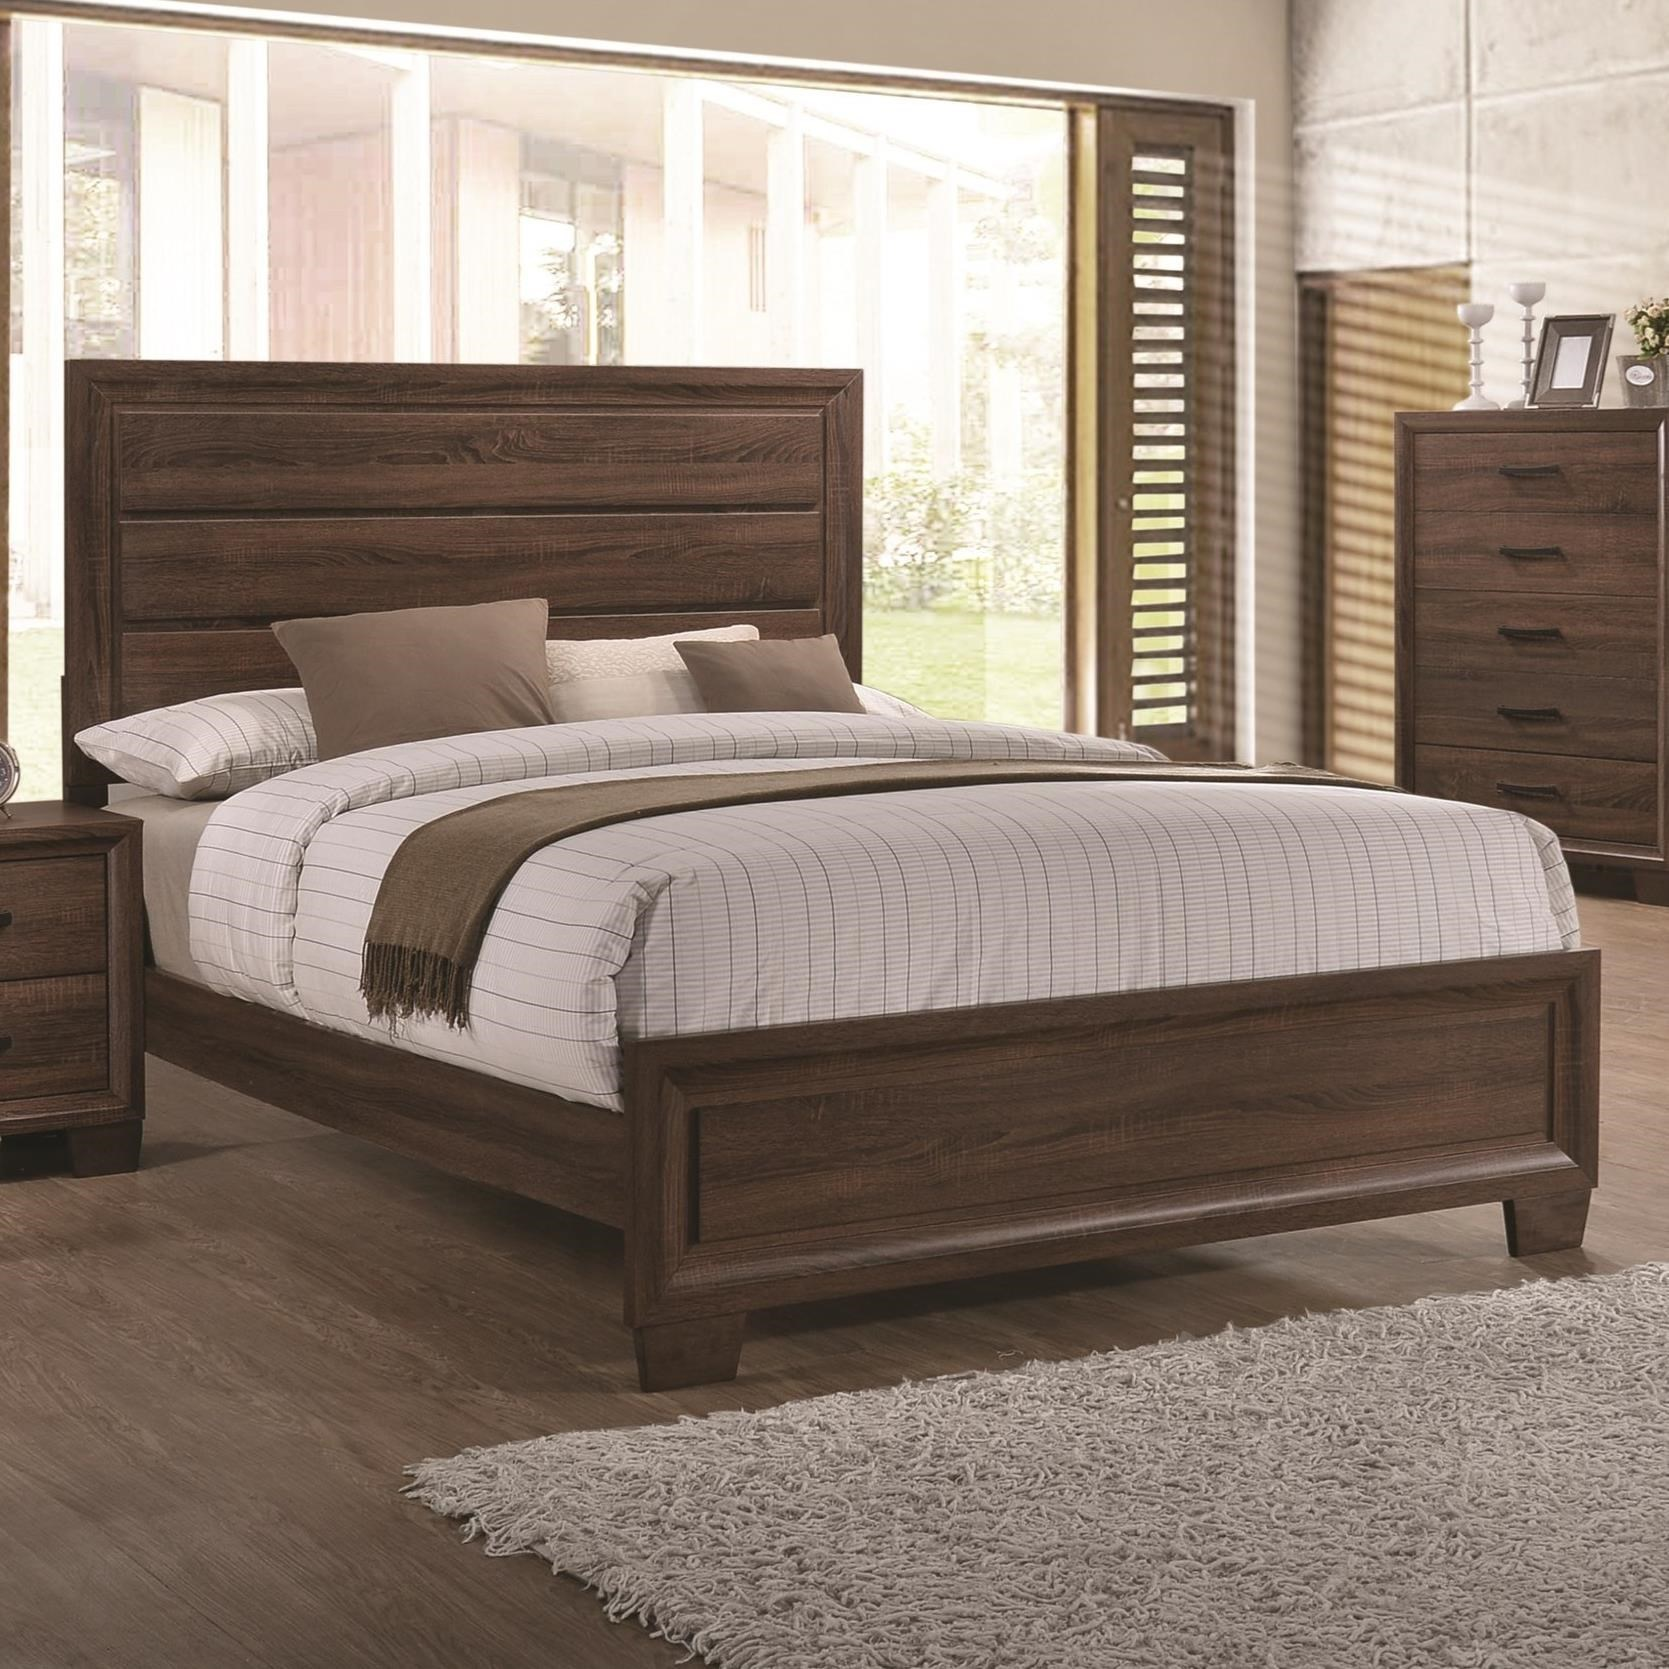 Brandon transitionally styled king panel bed quality for Affordable furniture brandon